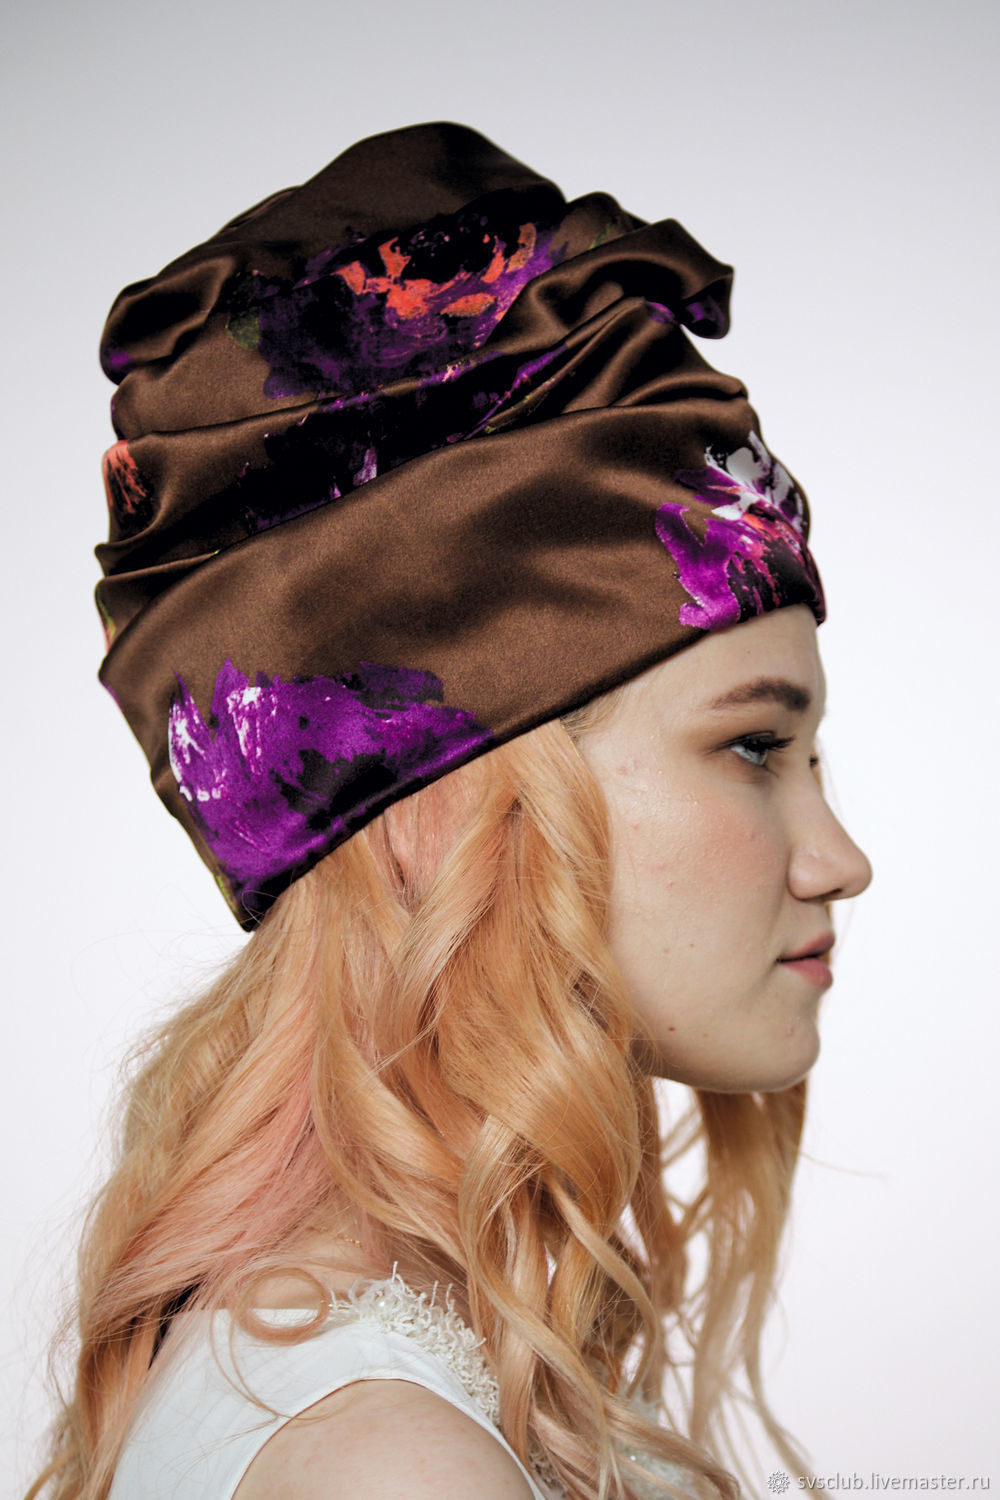 91b949d94ed Online shopping Hats handmade. Order Turban hat hijab millinery Brown with  flowers. TURBAN SVS.